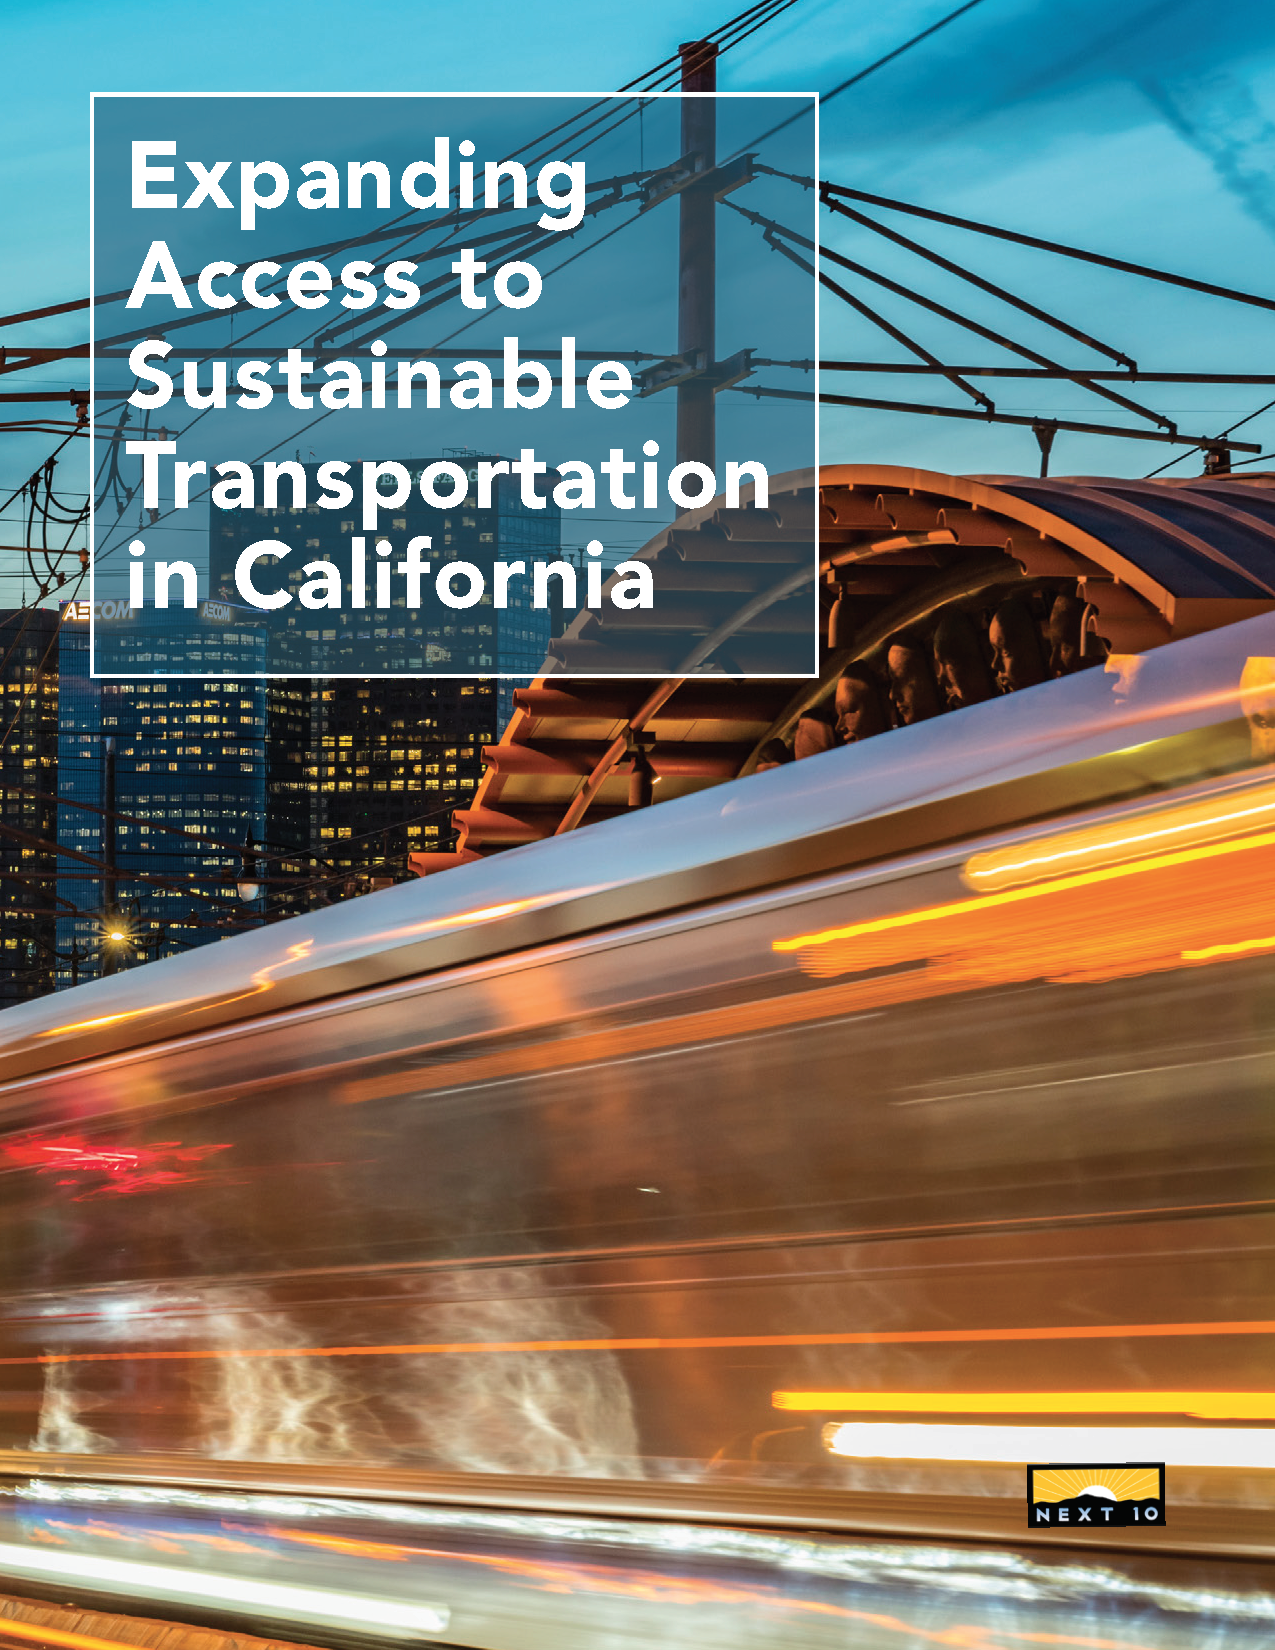 Expanding Access to Sustainable Transportation in California